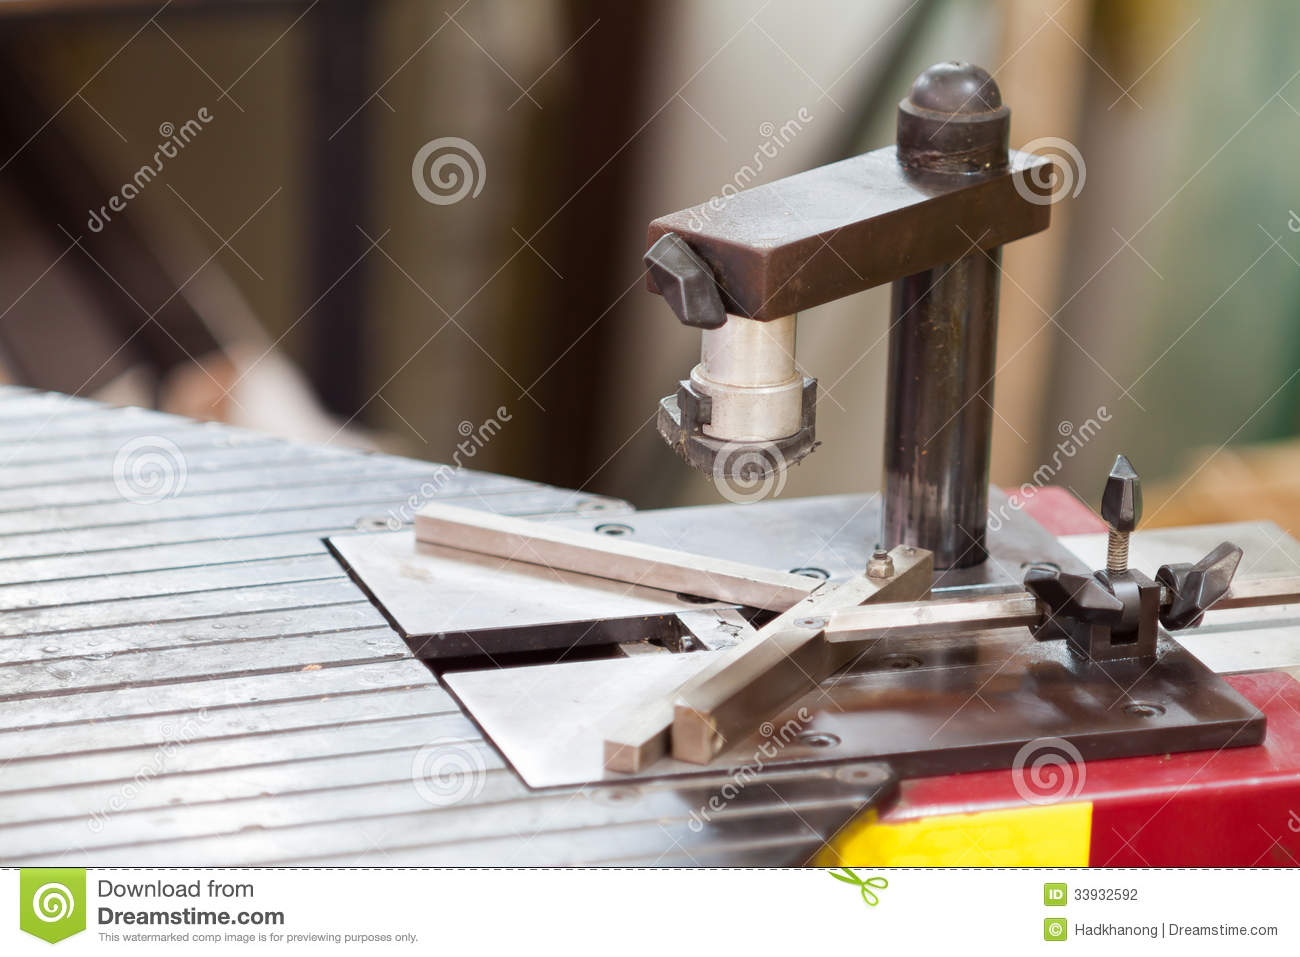 Picture frame making tool stock photo. Image of workshop - 33932592